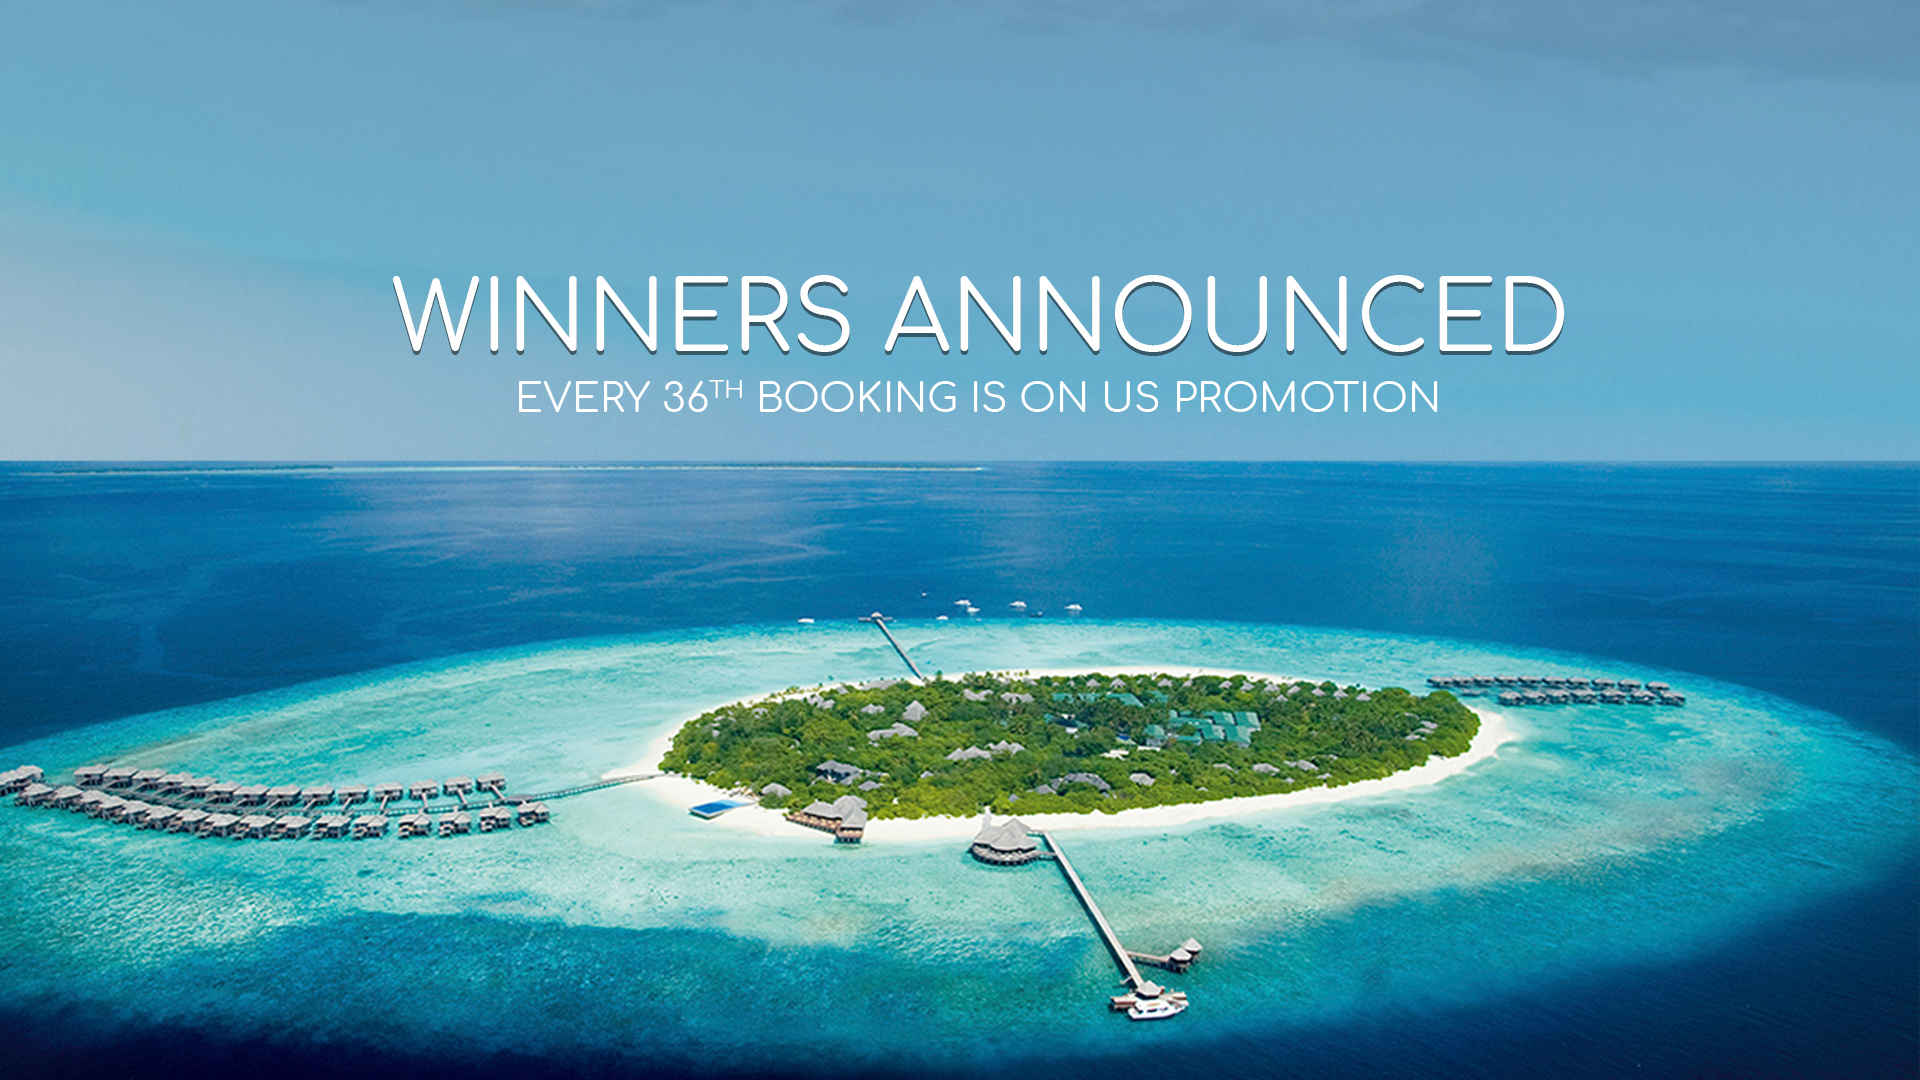 36th_Booking_Winners_Announcement